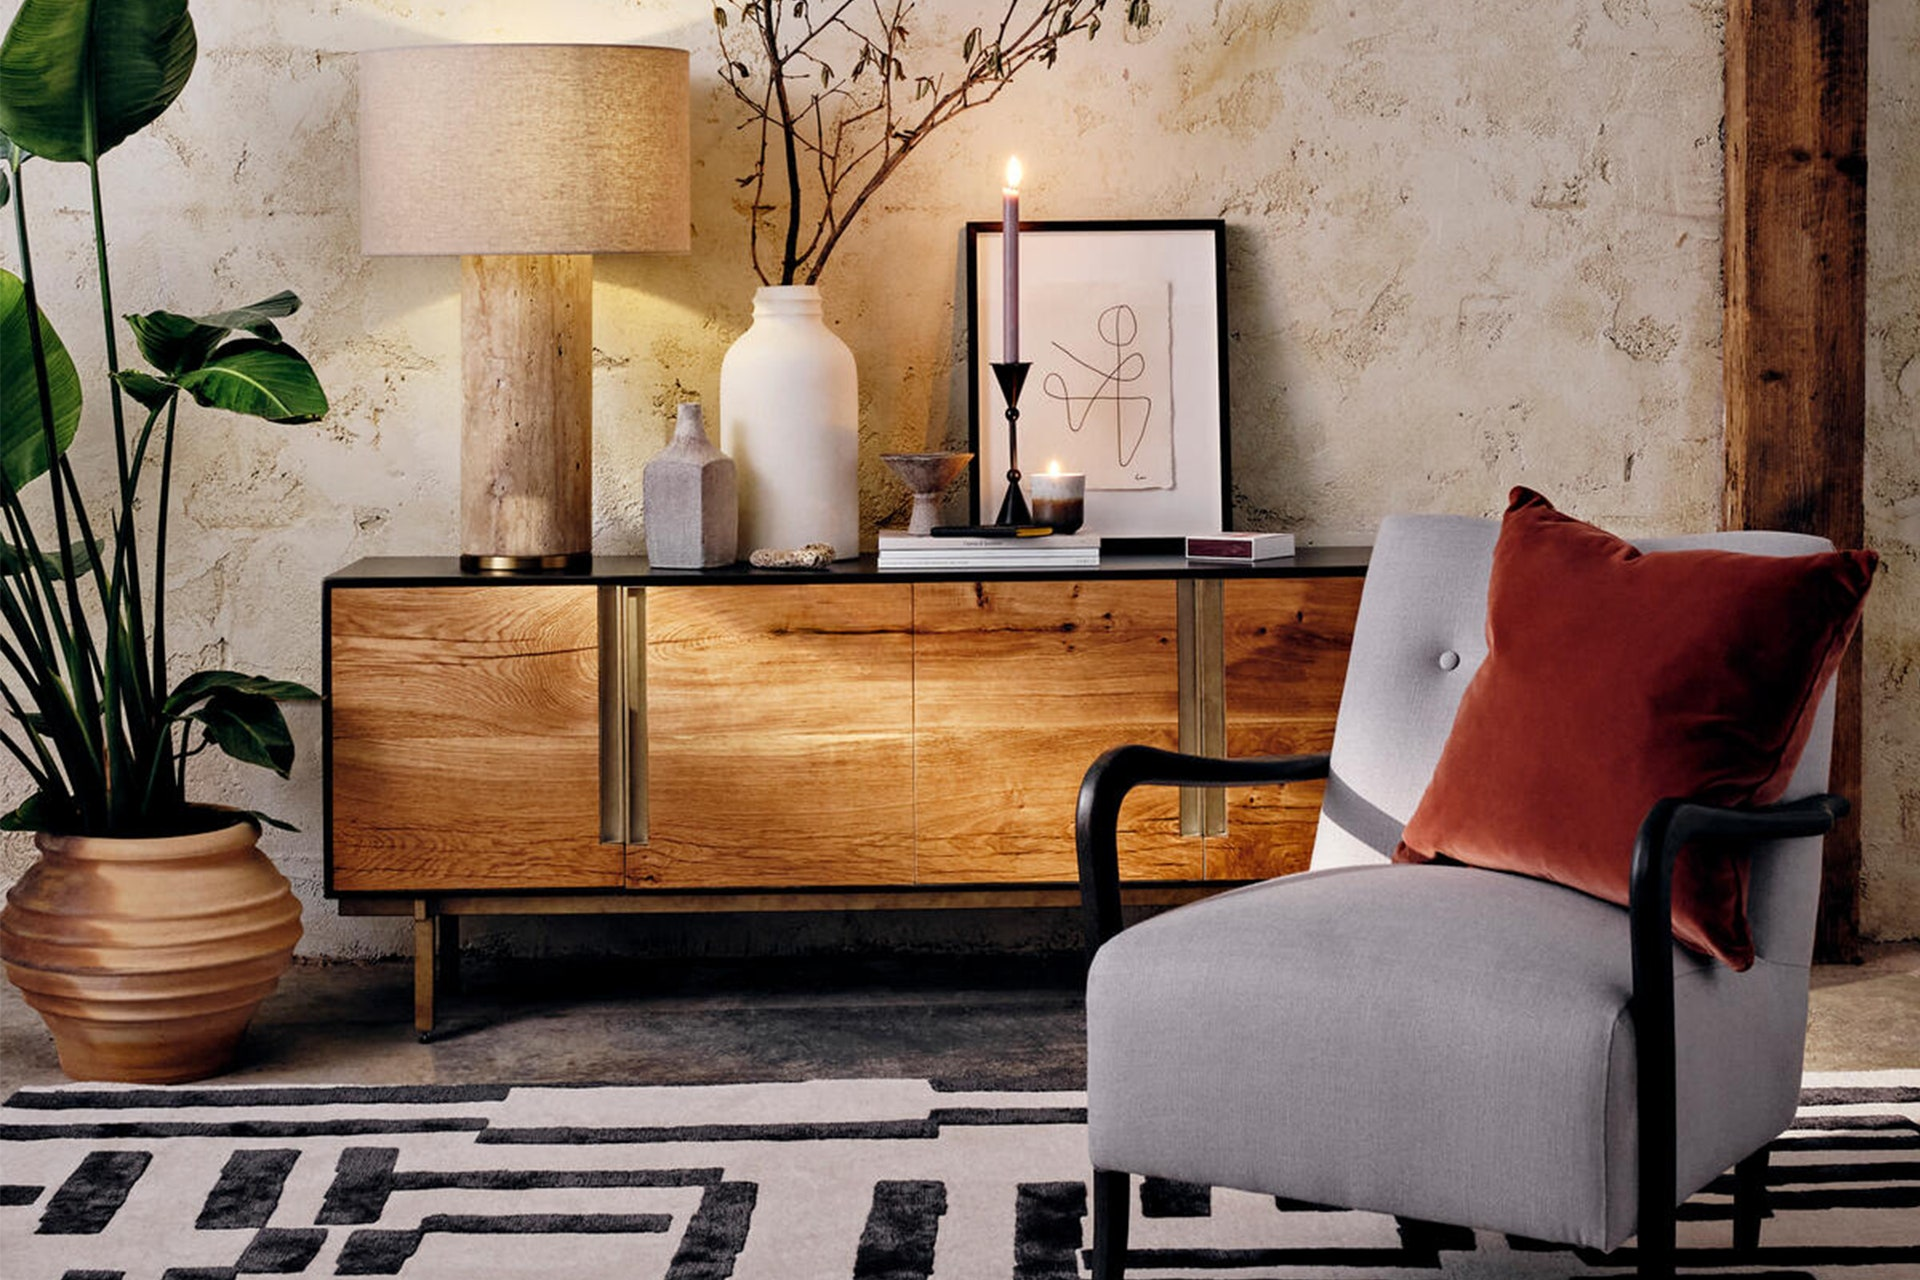 Storing Unit Would Be The Best Option For Preserving Your Furniture